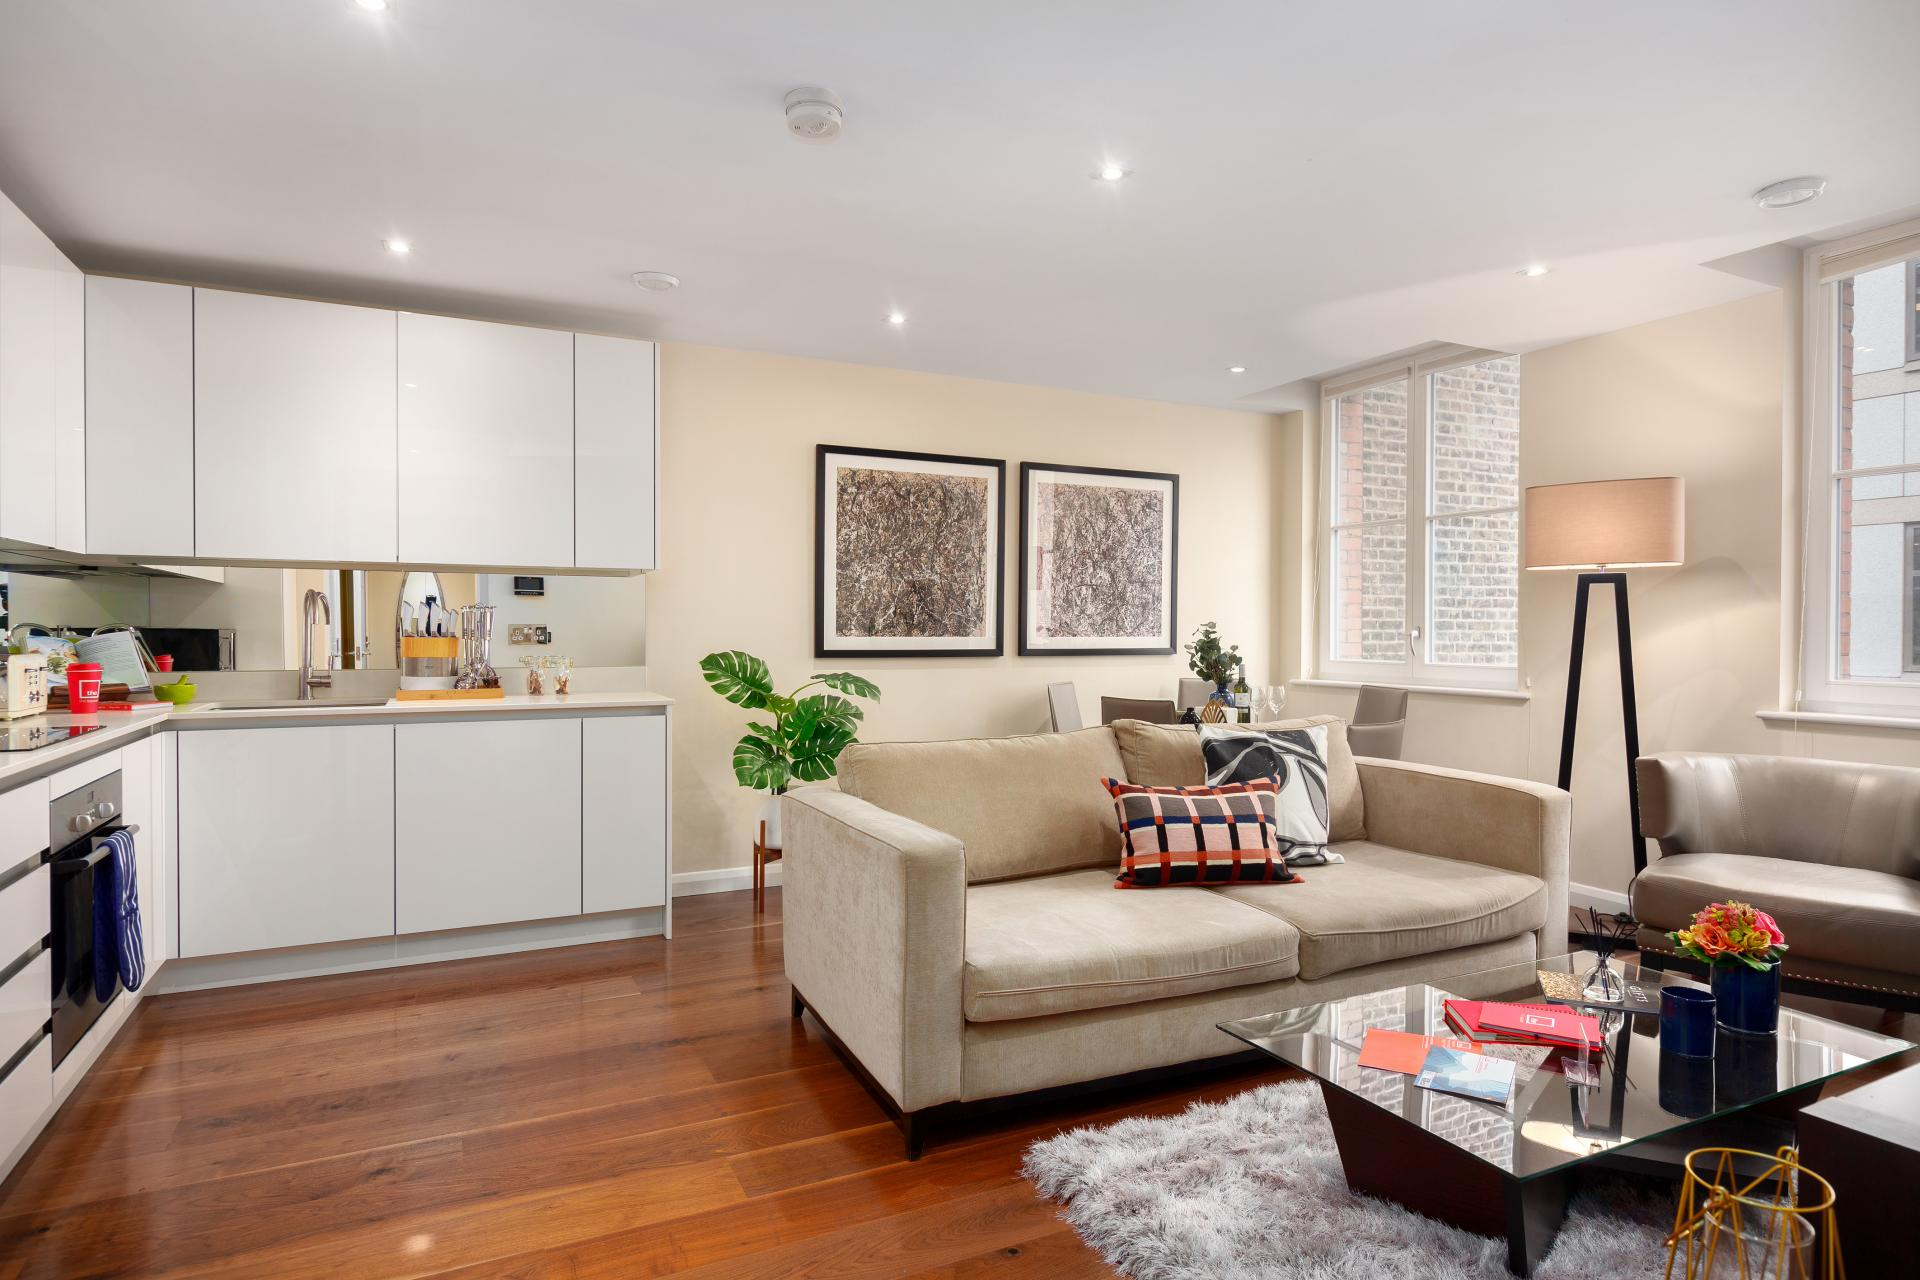 Open-plan living space at Chancery Lane Apartment, Chancery Lane, London - Citybase Apartments